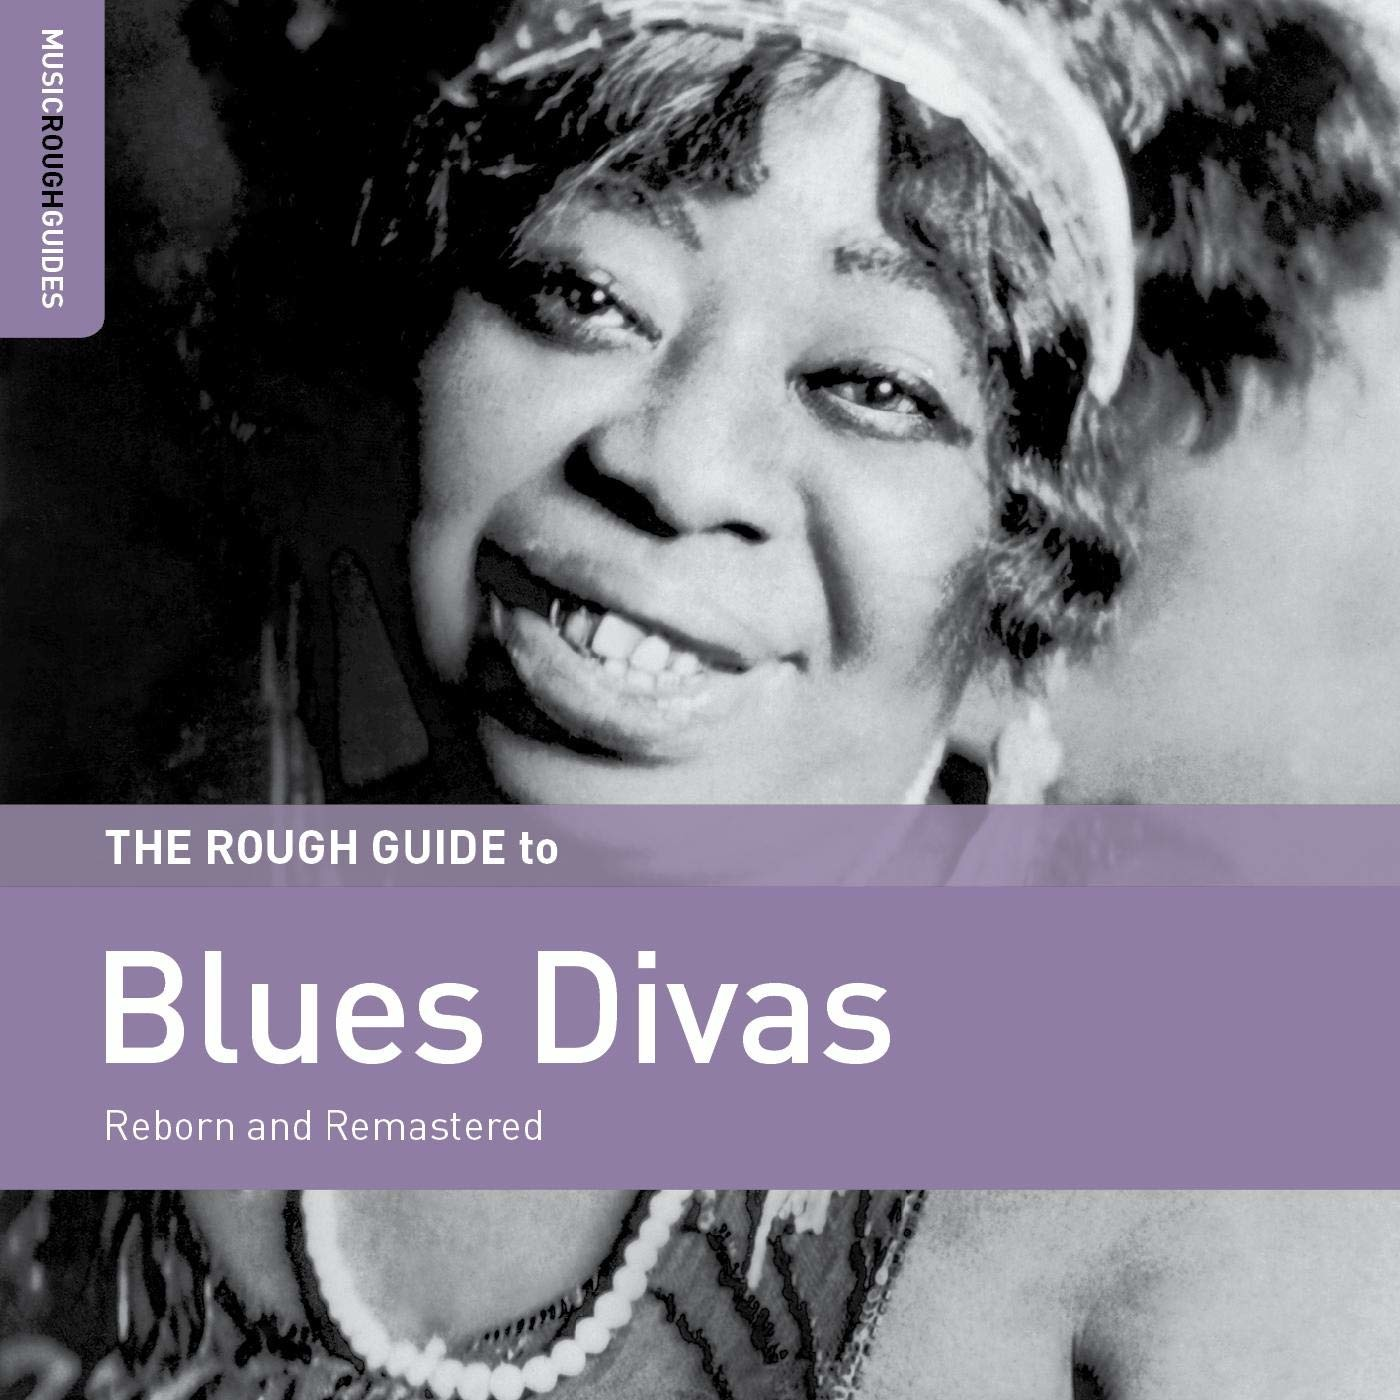 Rough Guide to Blues Divas - Reborn and Remastered - V/A - Musik - WORLD MUSIC NETWORK - 0605633139228 - 29/11-2019